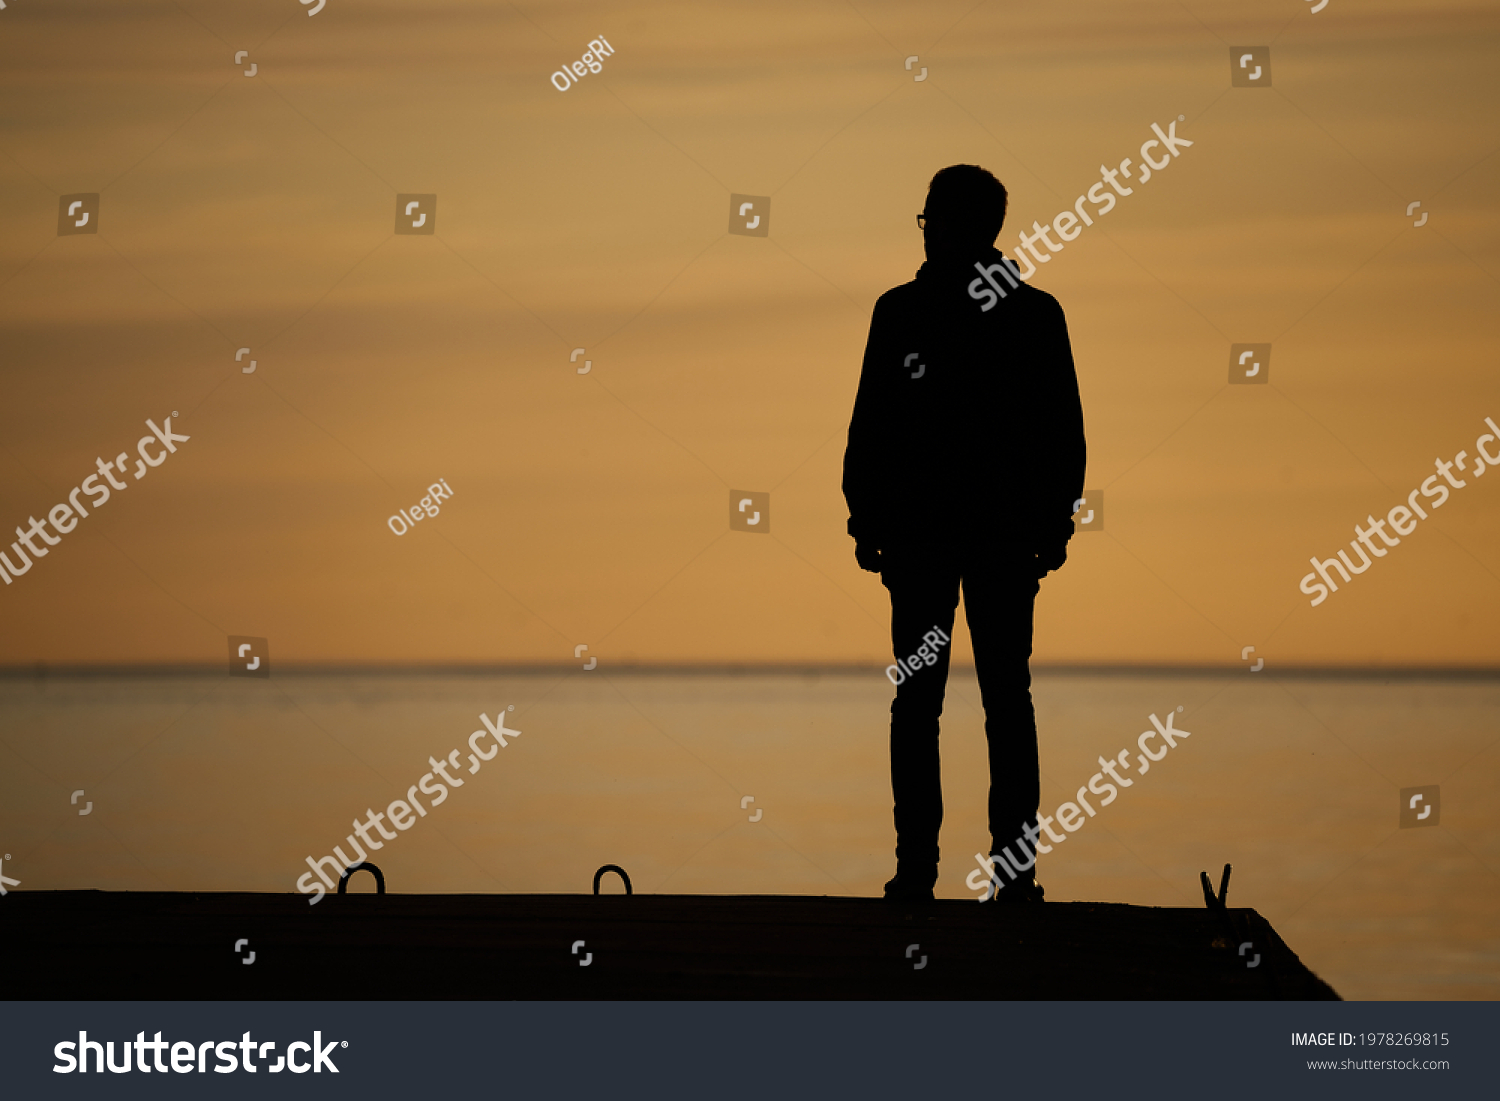 man standing on rock looking straight. Nature and beauty concept. Orange sundown. silhouette at sunset #1978269815